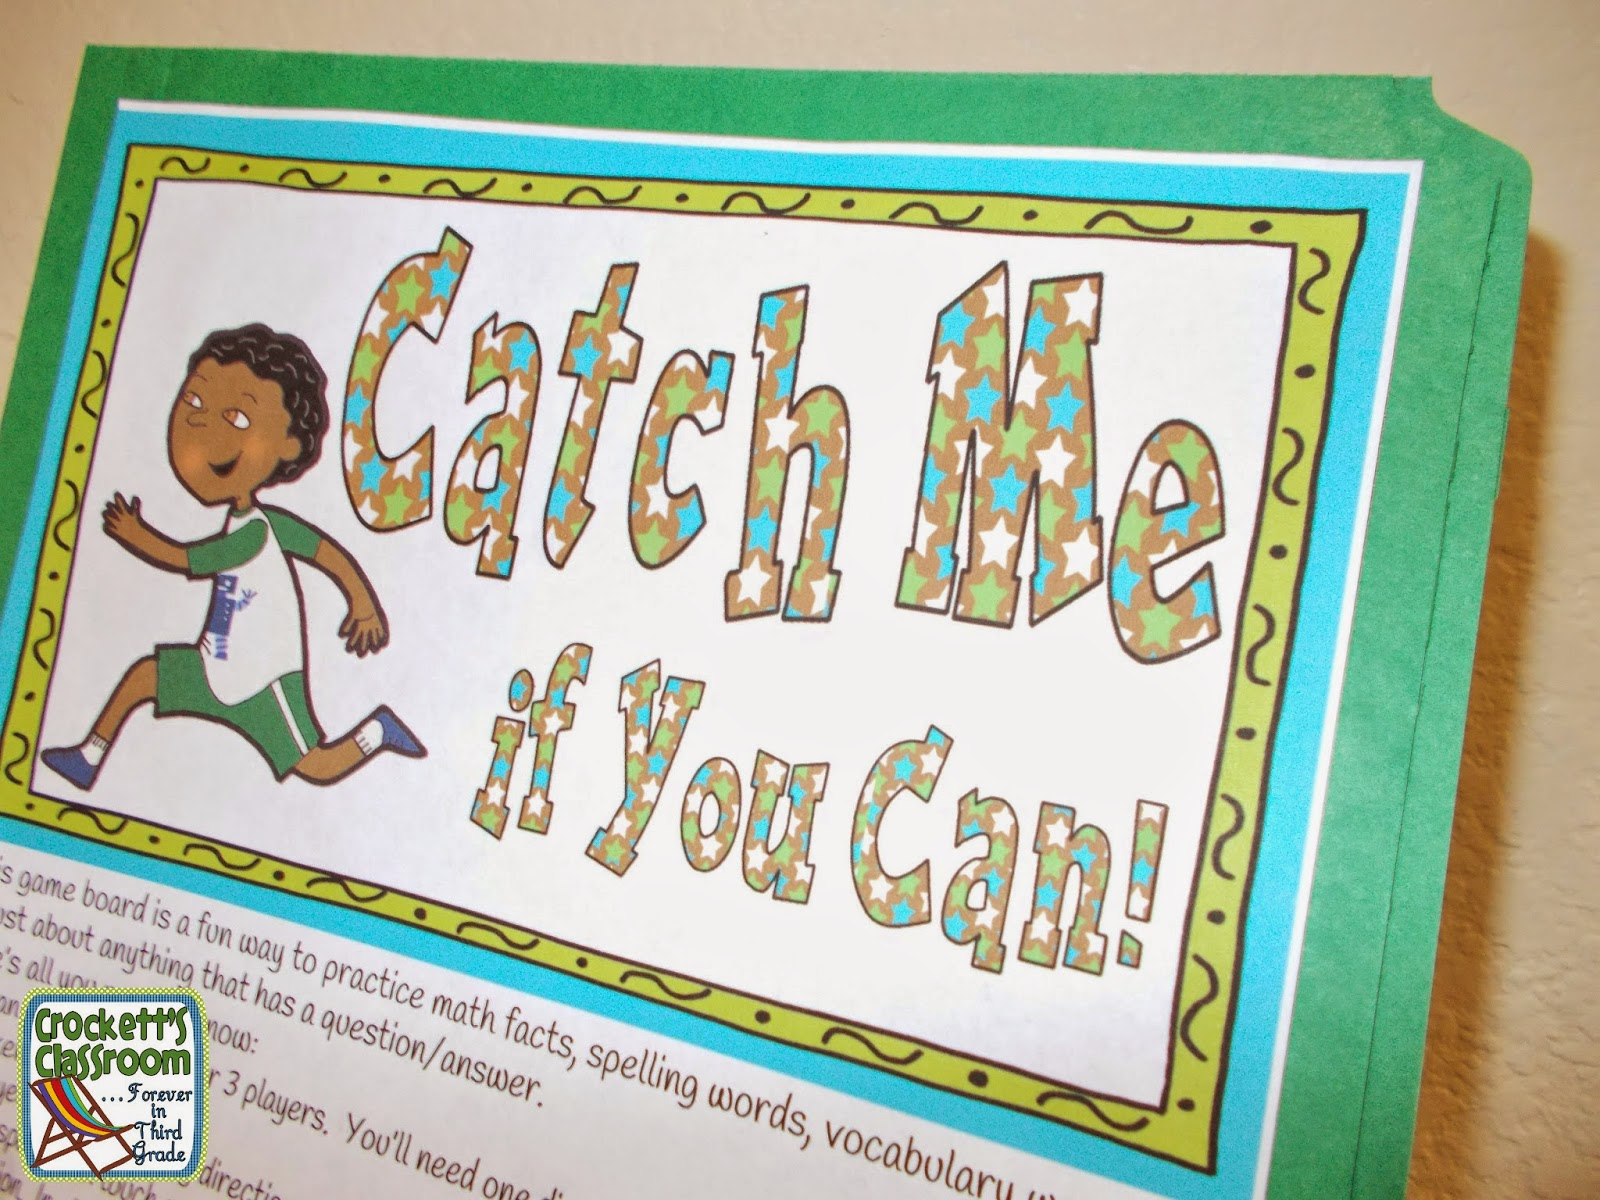 Catch Me if You Can--Crockett's Classroom